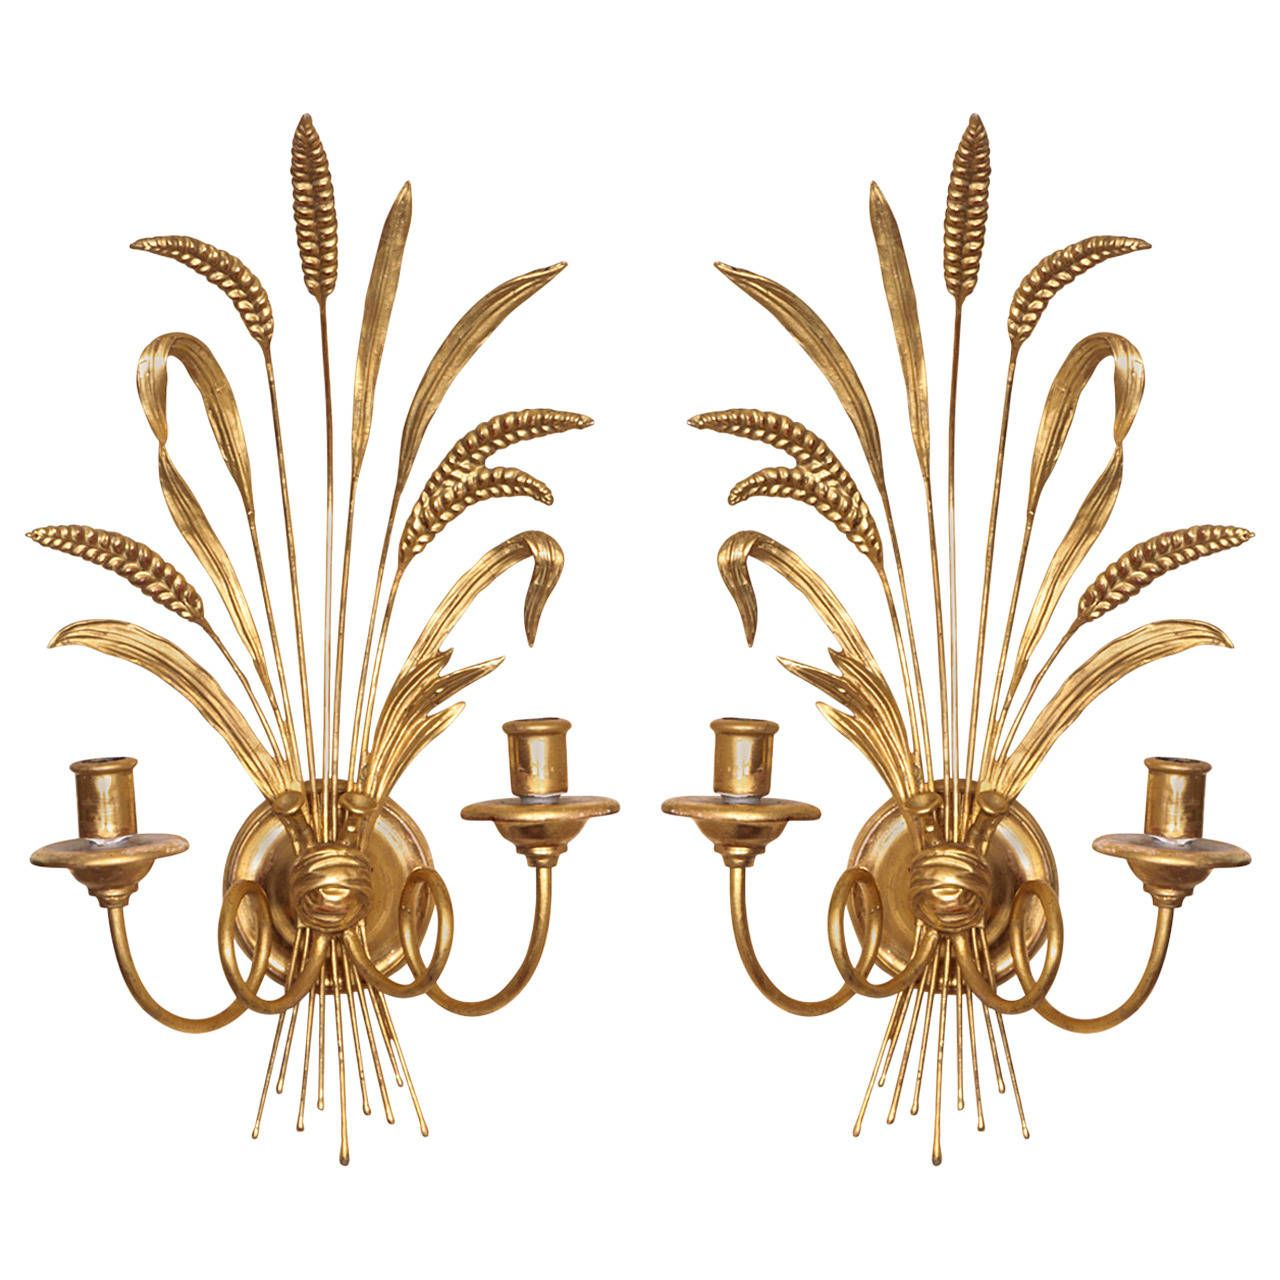 Pair Of Giltwood And Gesso Wheat Sheaf Sconces Www Babounewyork Com Vintage Wall Lights Vintage Sconce Sconces